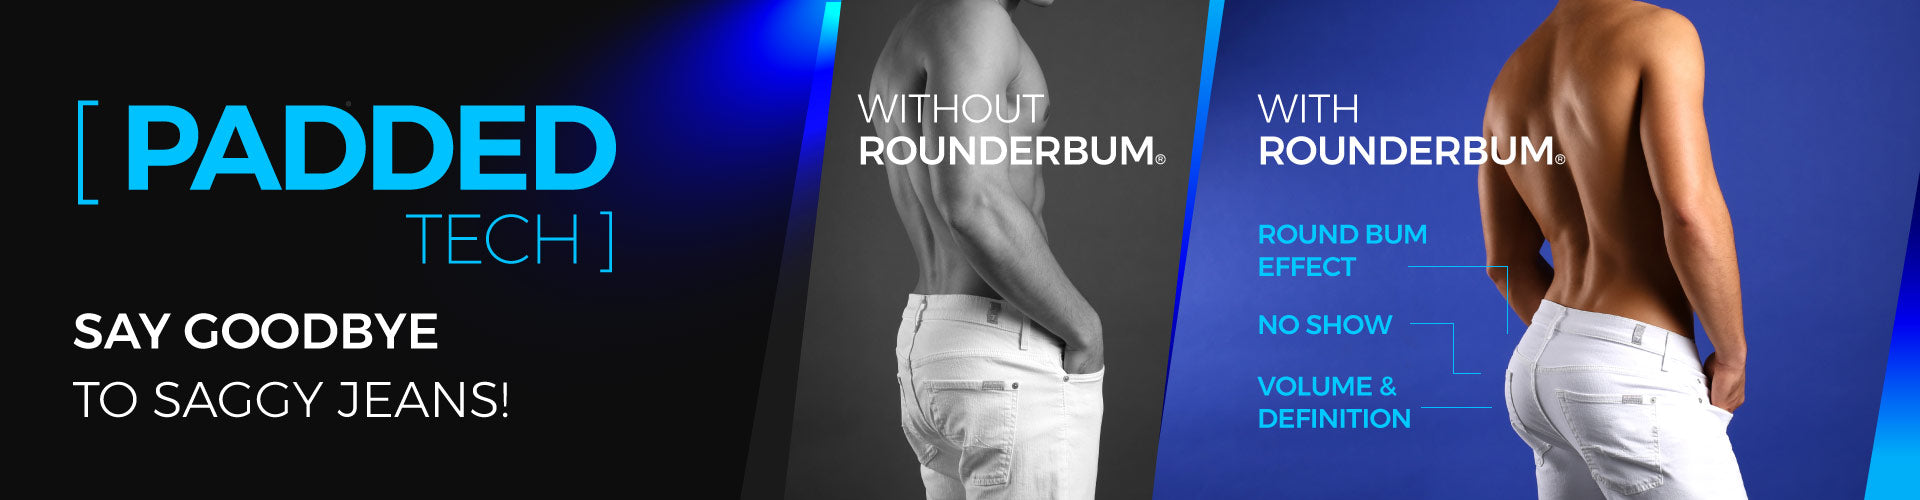 rounderbum lift tech collection underwear for men